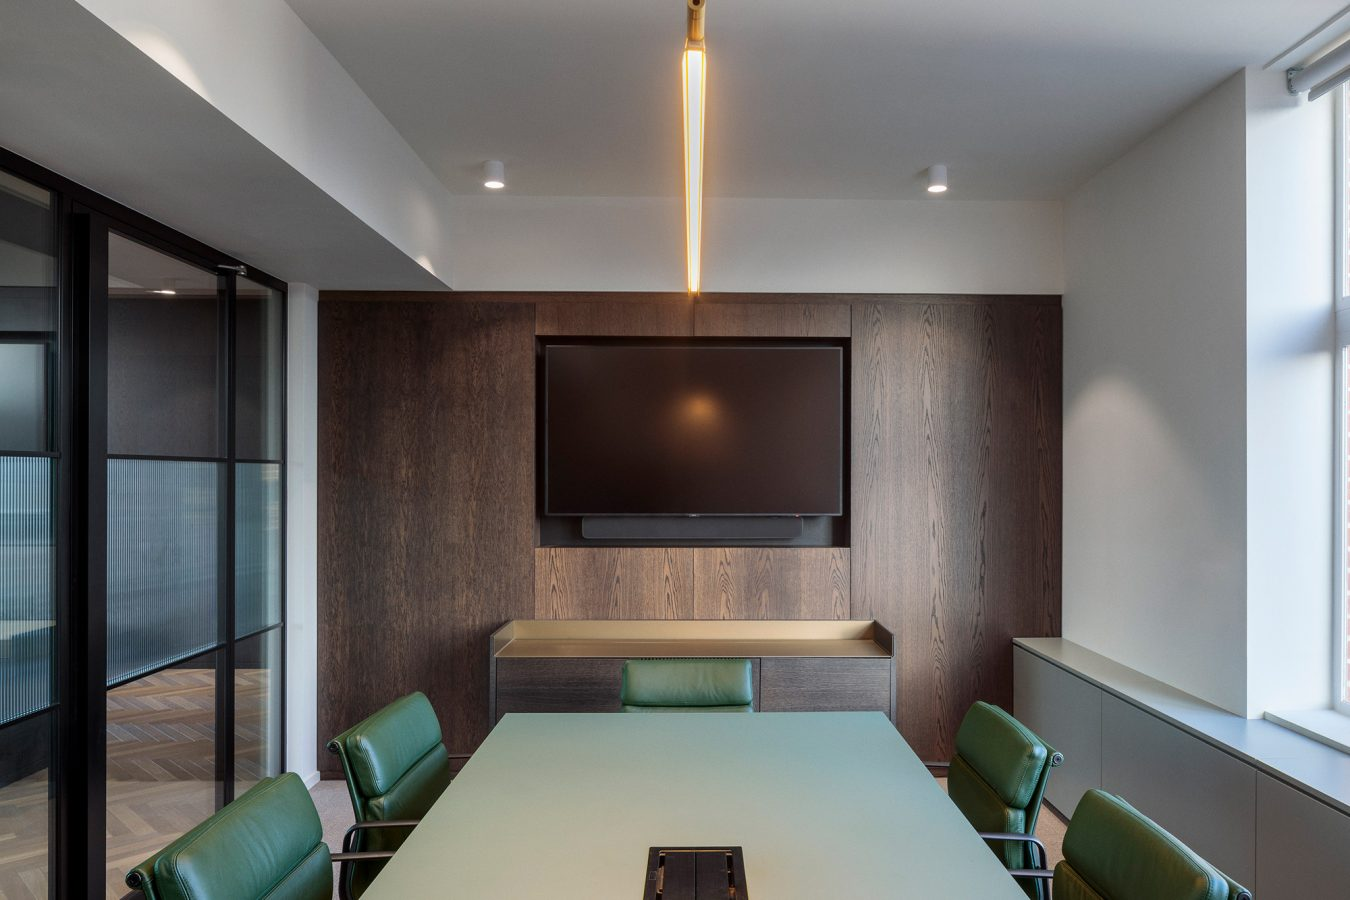 Green meeting room table and green leather chairs to decorate an office room.